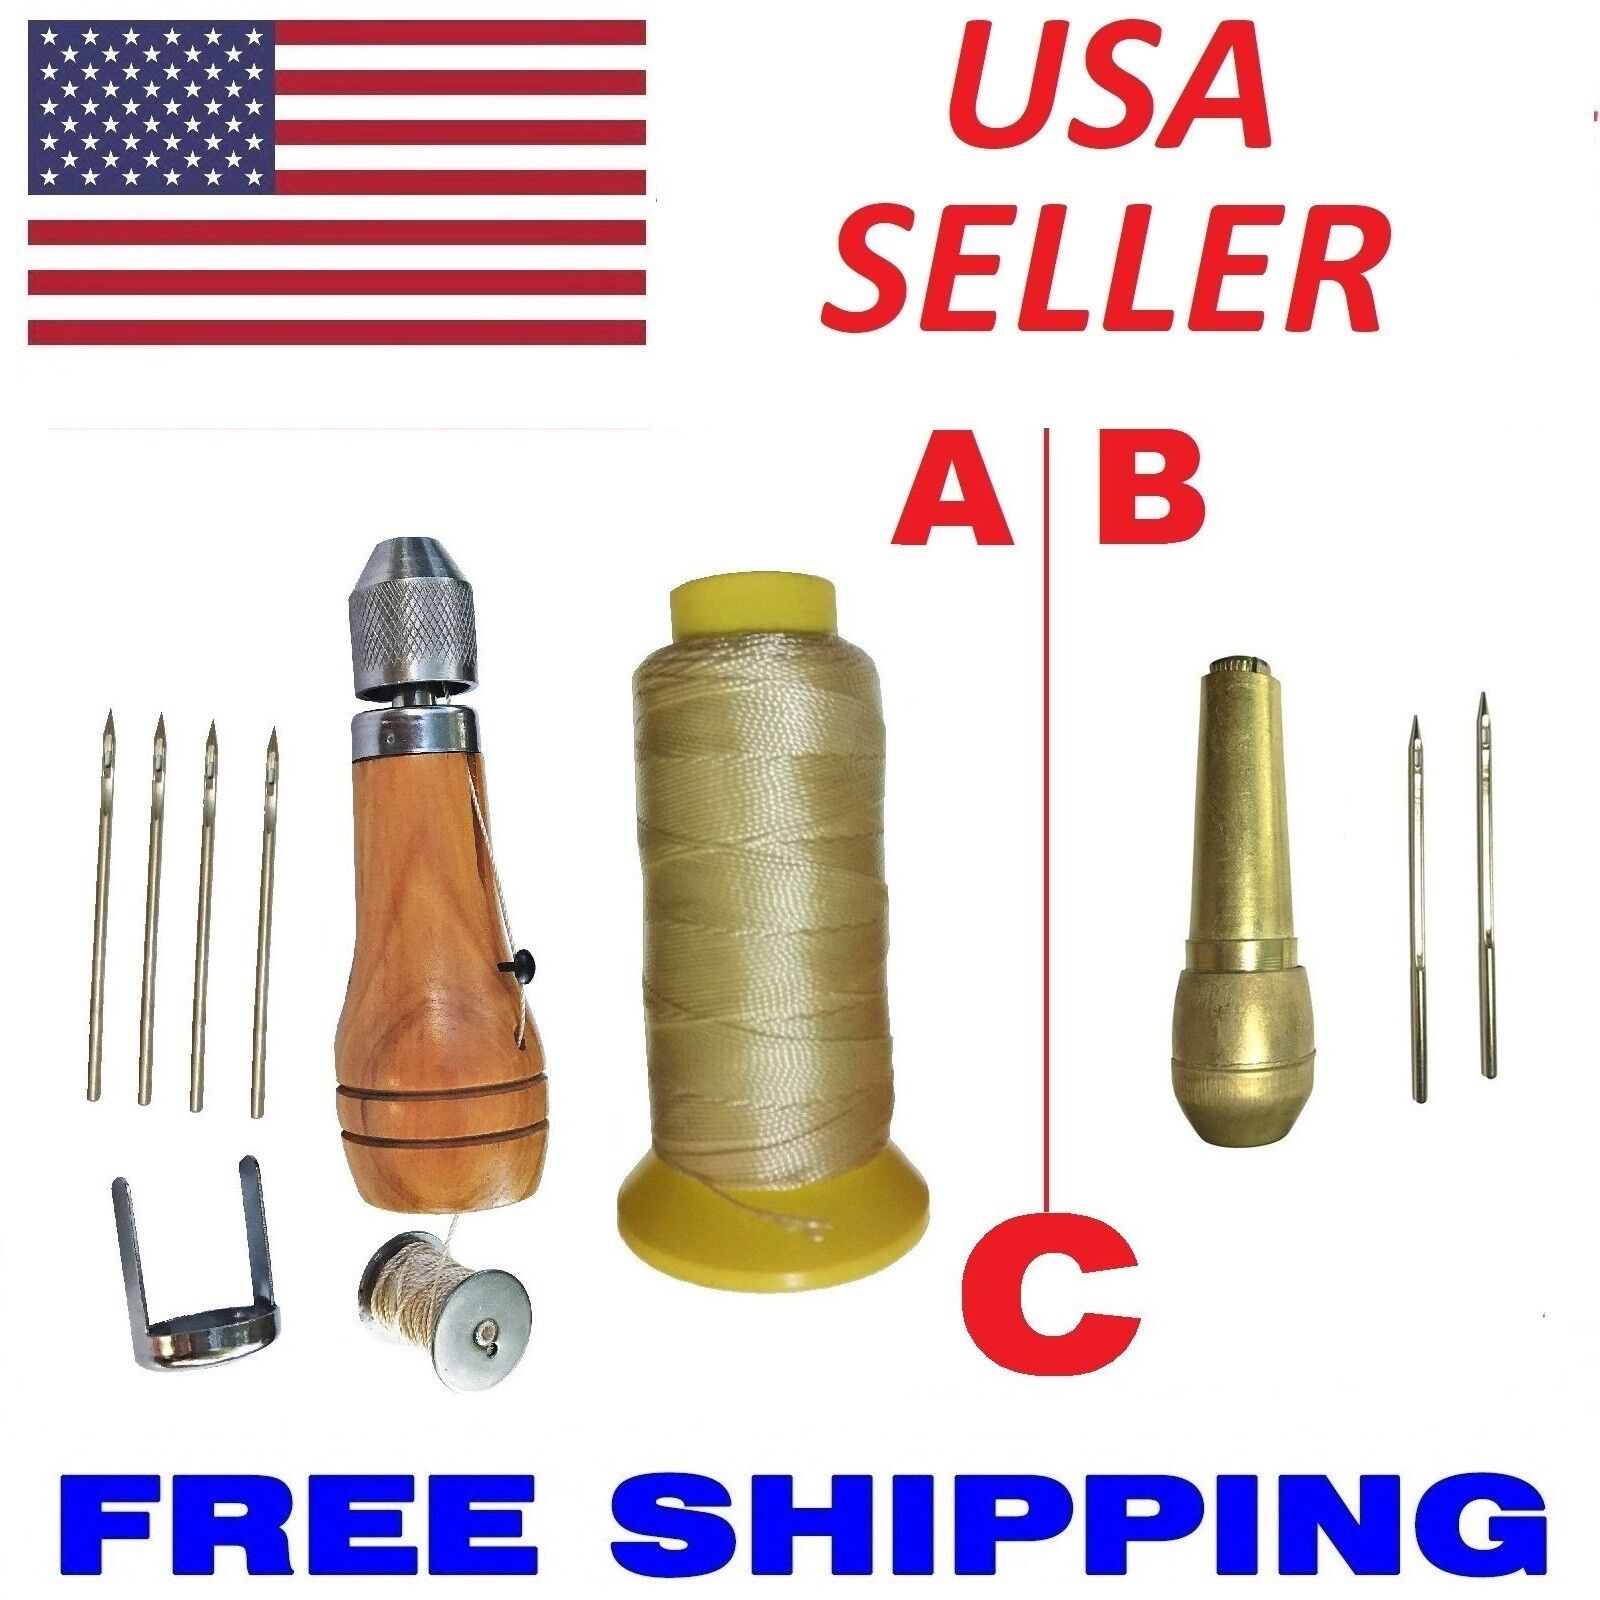 Quick Sewing Awl Leather Canvas Repair Stitcher Kit 4 Needle